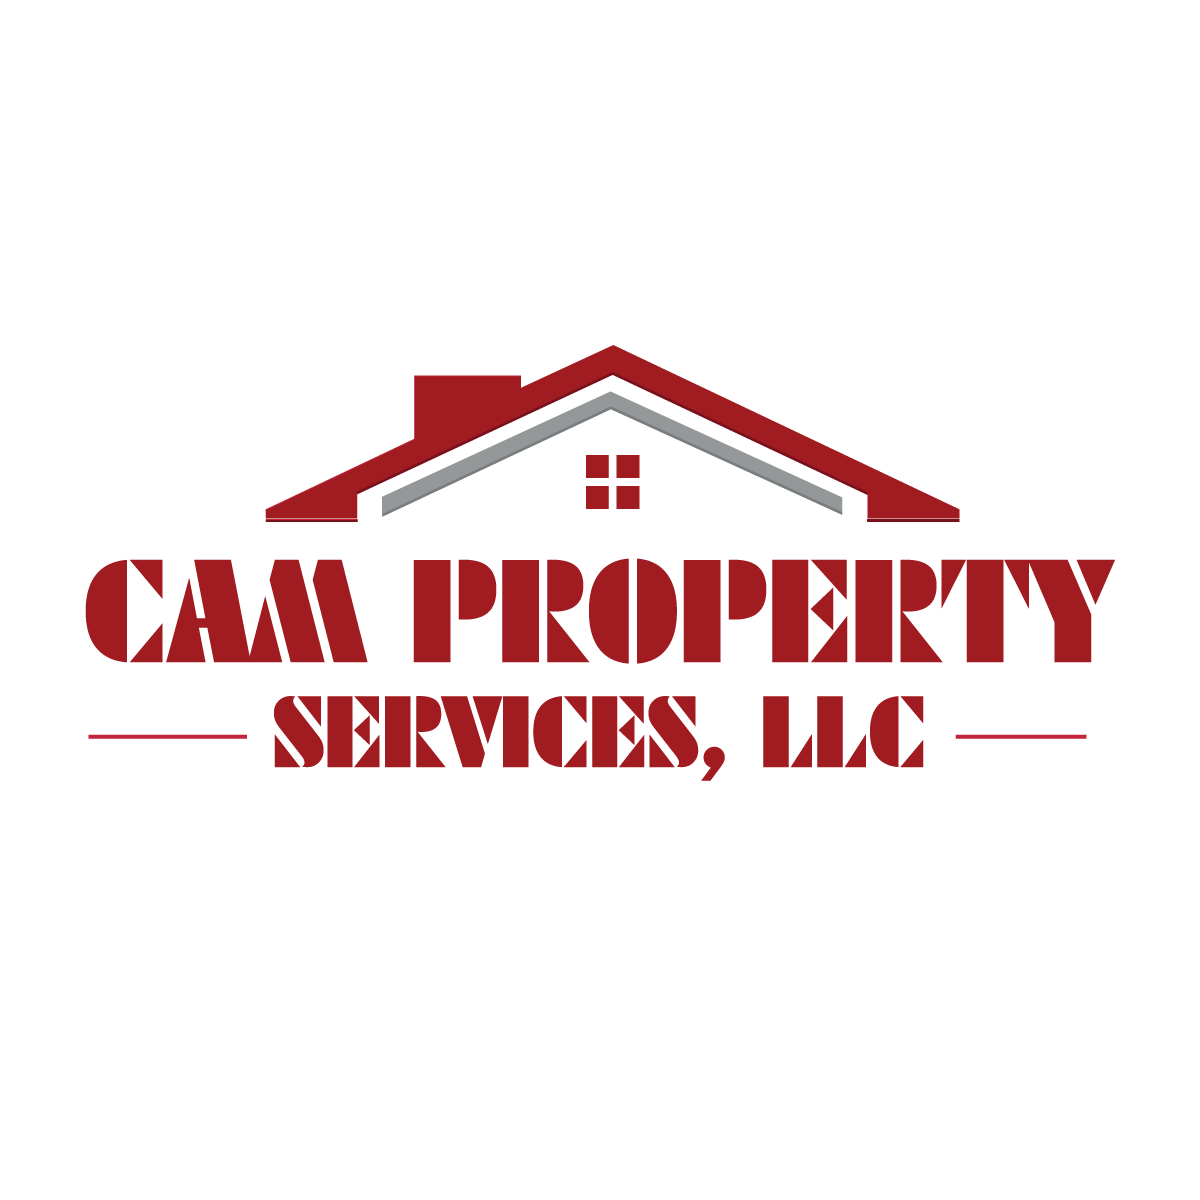 CaM Property Services, LLC